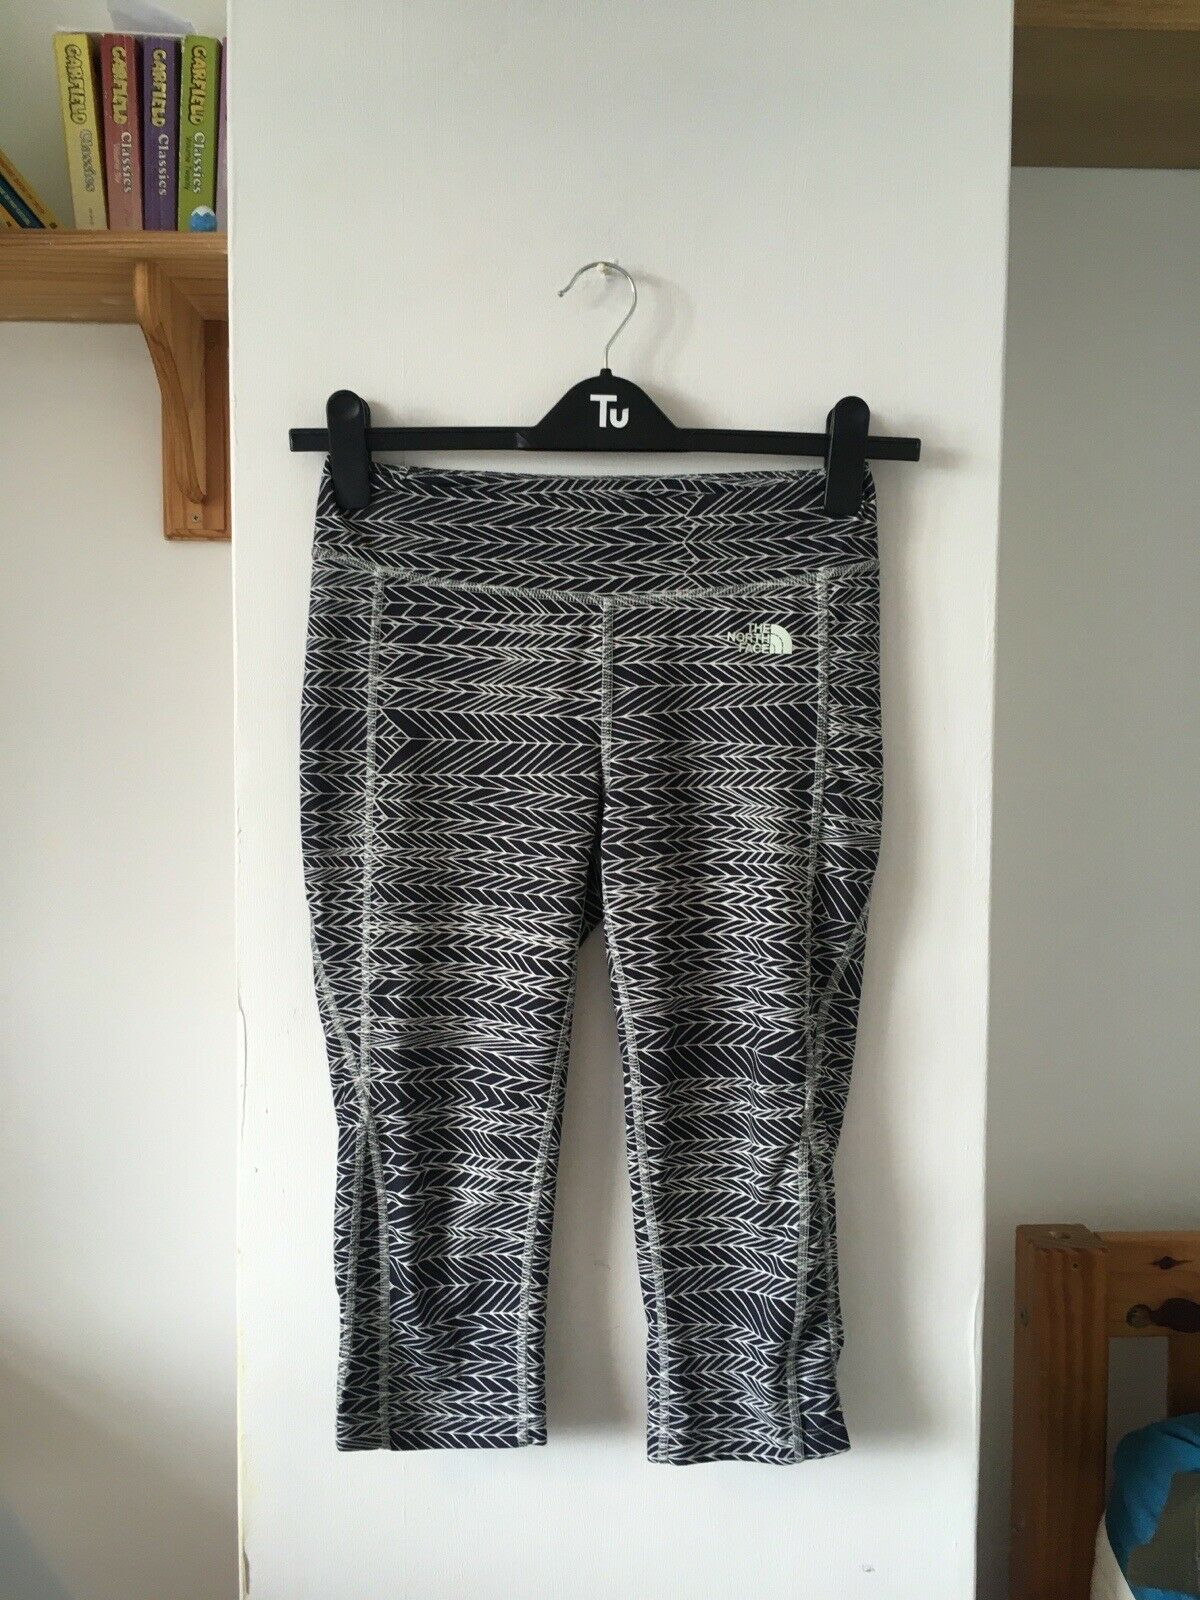 The North Face Flash Dry Patterned Leggings Cropped Women's Size M